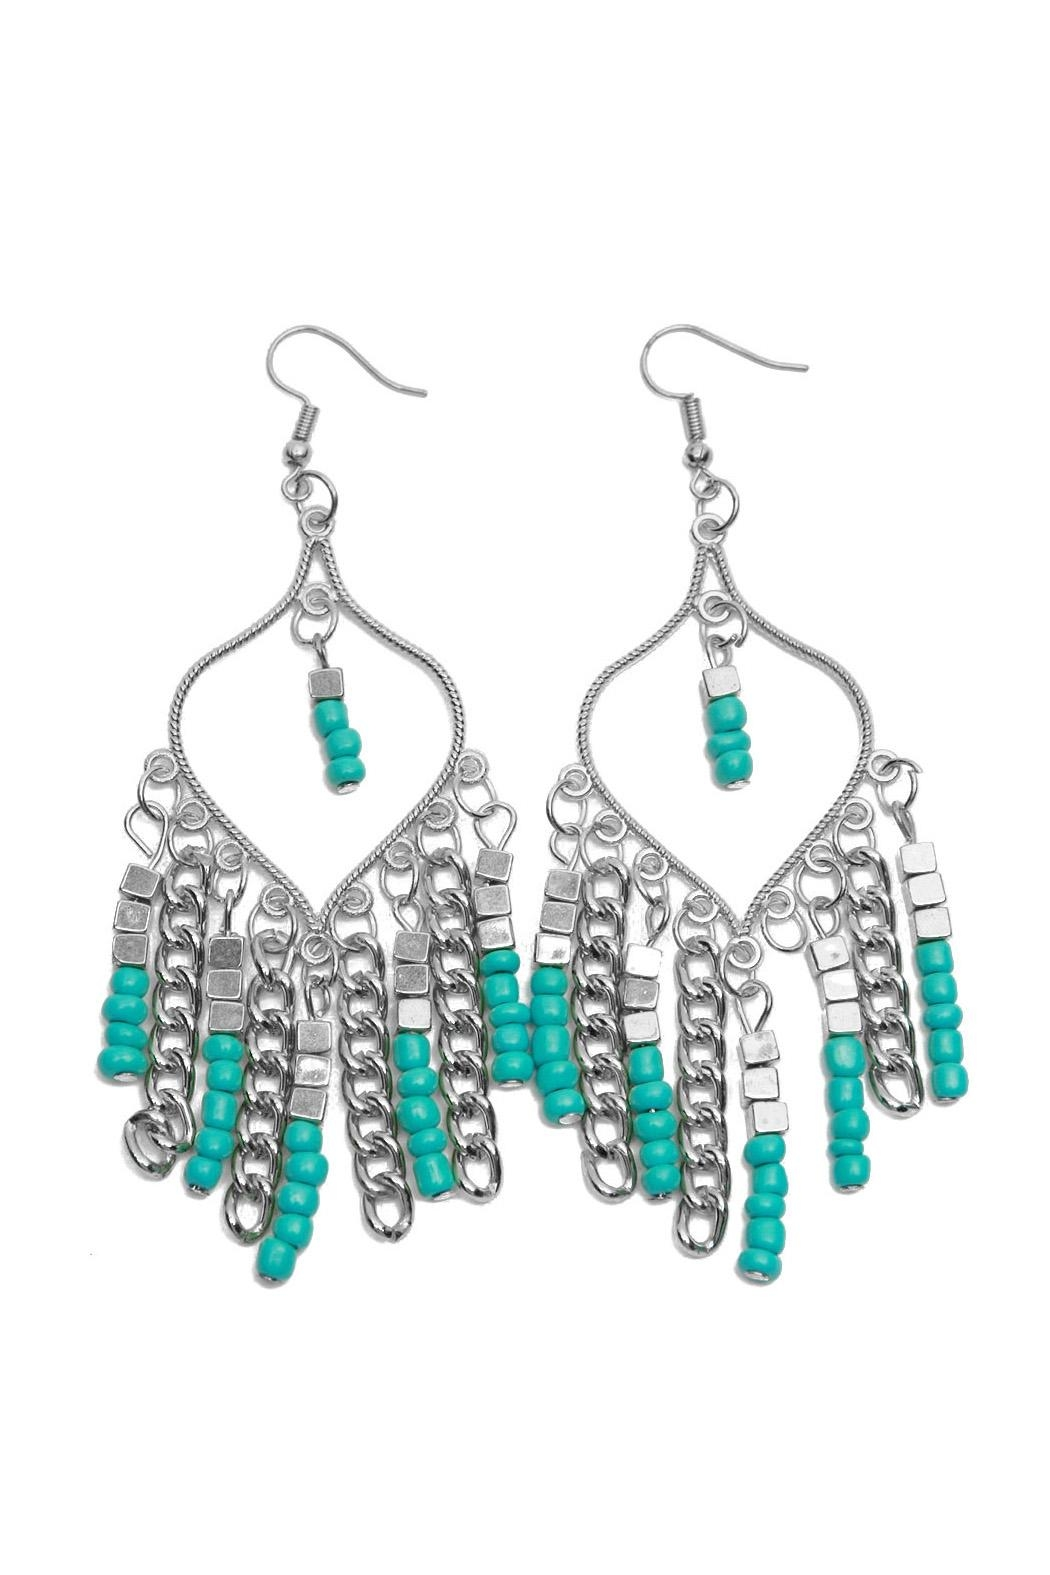 Riah fashion turquoise chandelier dangle earrings from california riah fashion turquoise chandelier dangle earrings front cropped image aloadofball Image collections